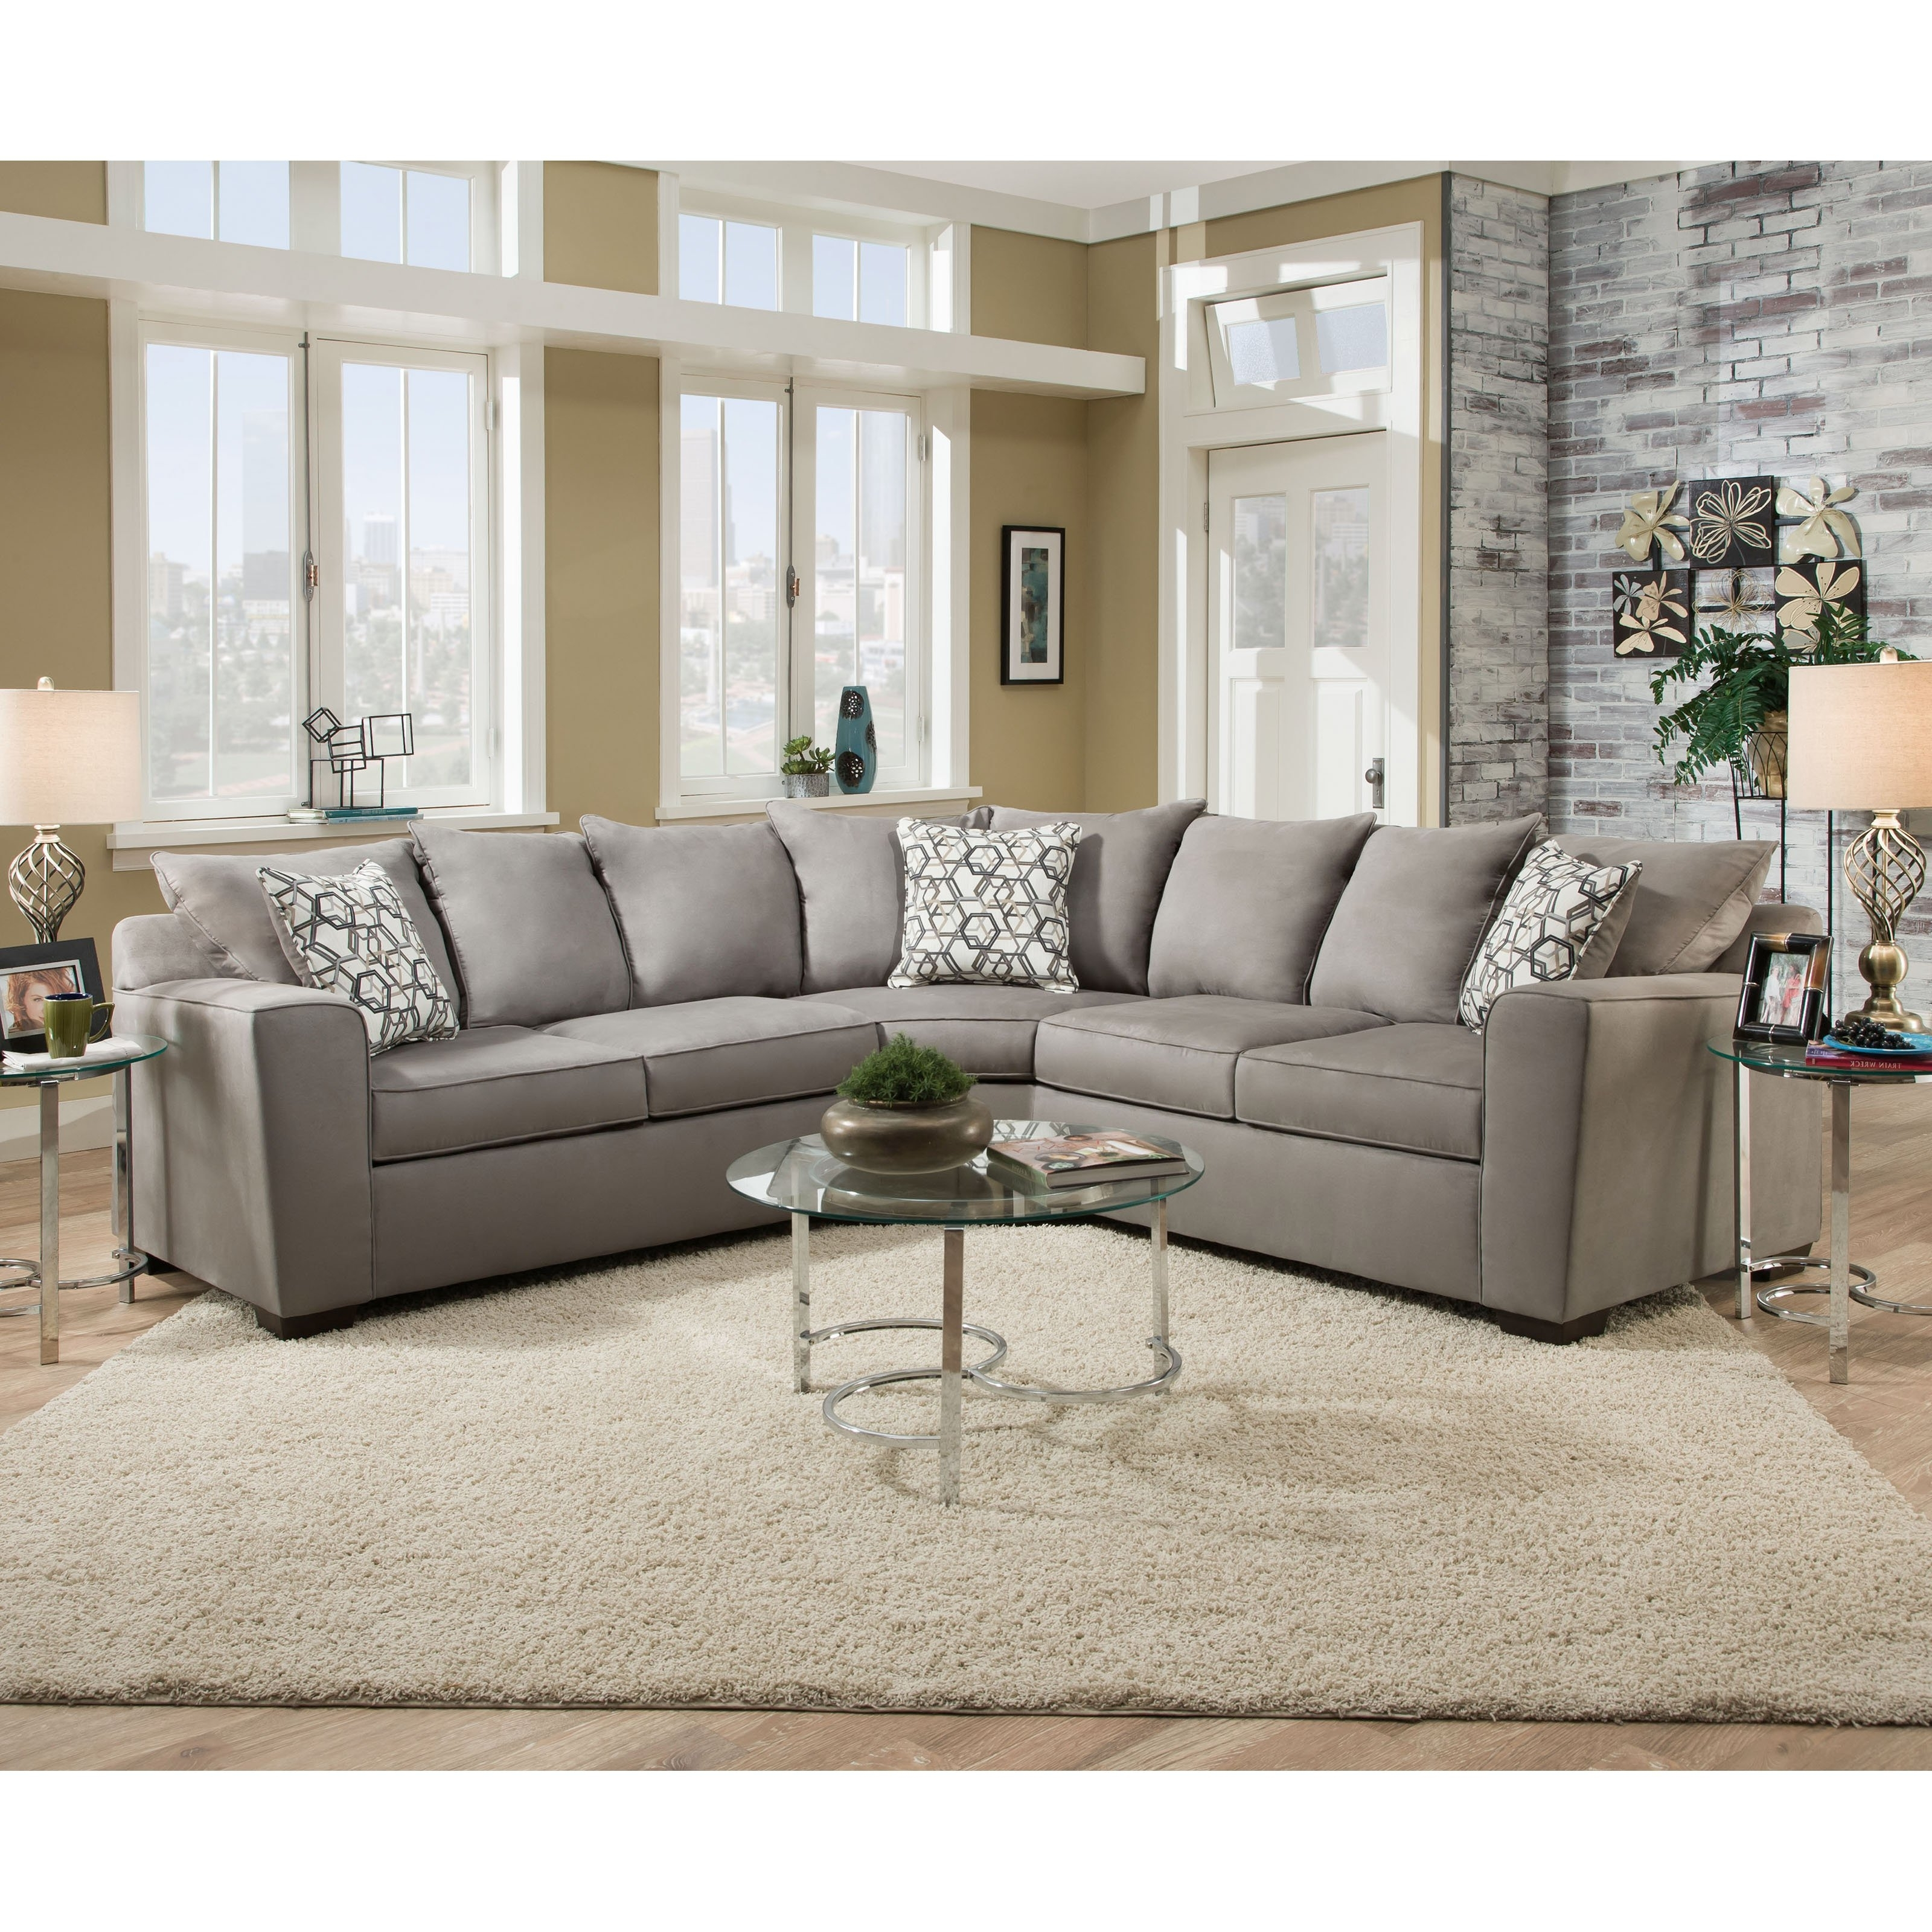 Simmons Sectional Sofas With Regard To Well Liked Simmons Venture Smoke Fabric Sectional (View 12 of 15)